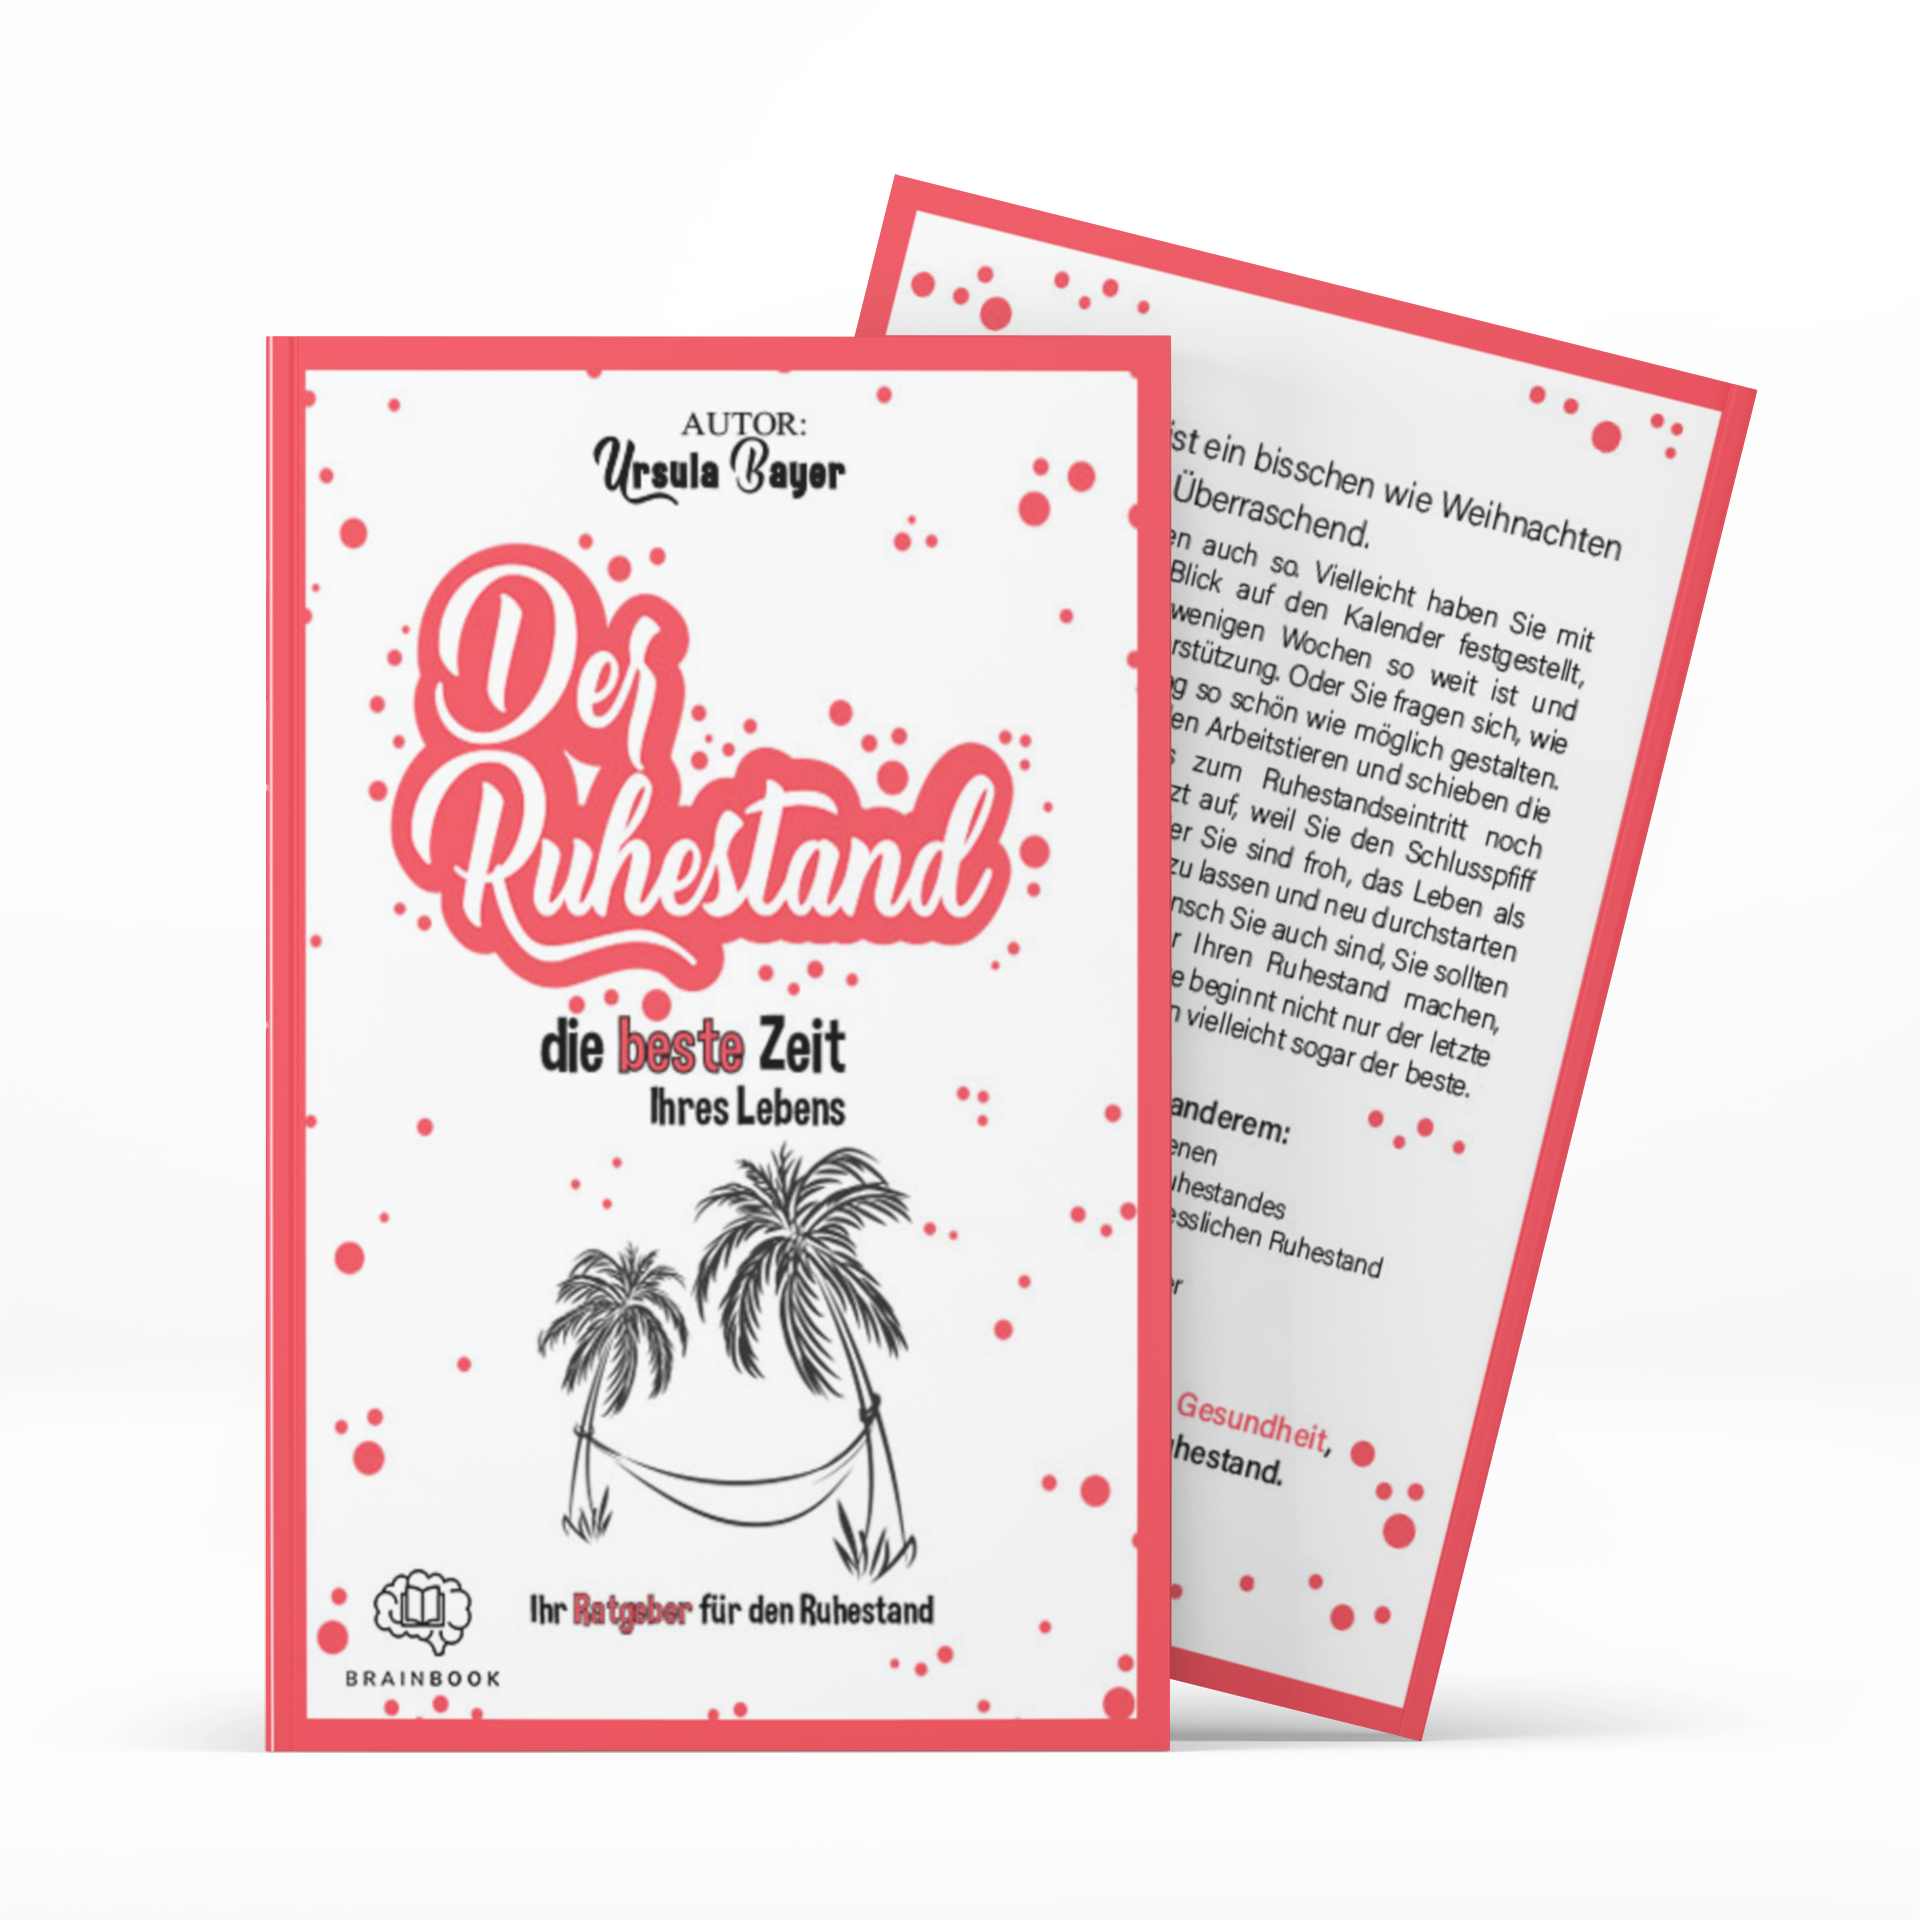 mockup-featuring-two-softcover-books-placed-one-in-front-of-the-other-3441-el1 (1)